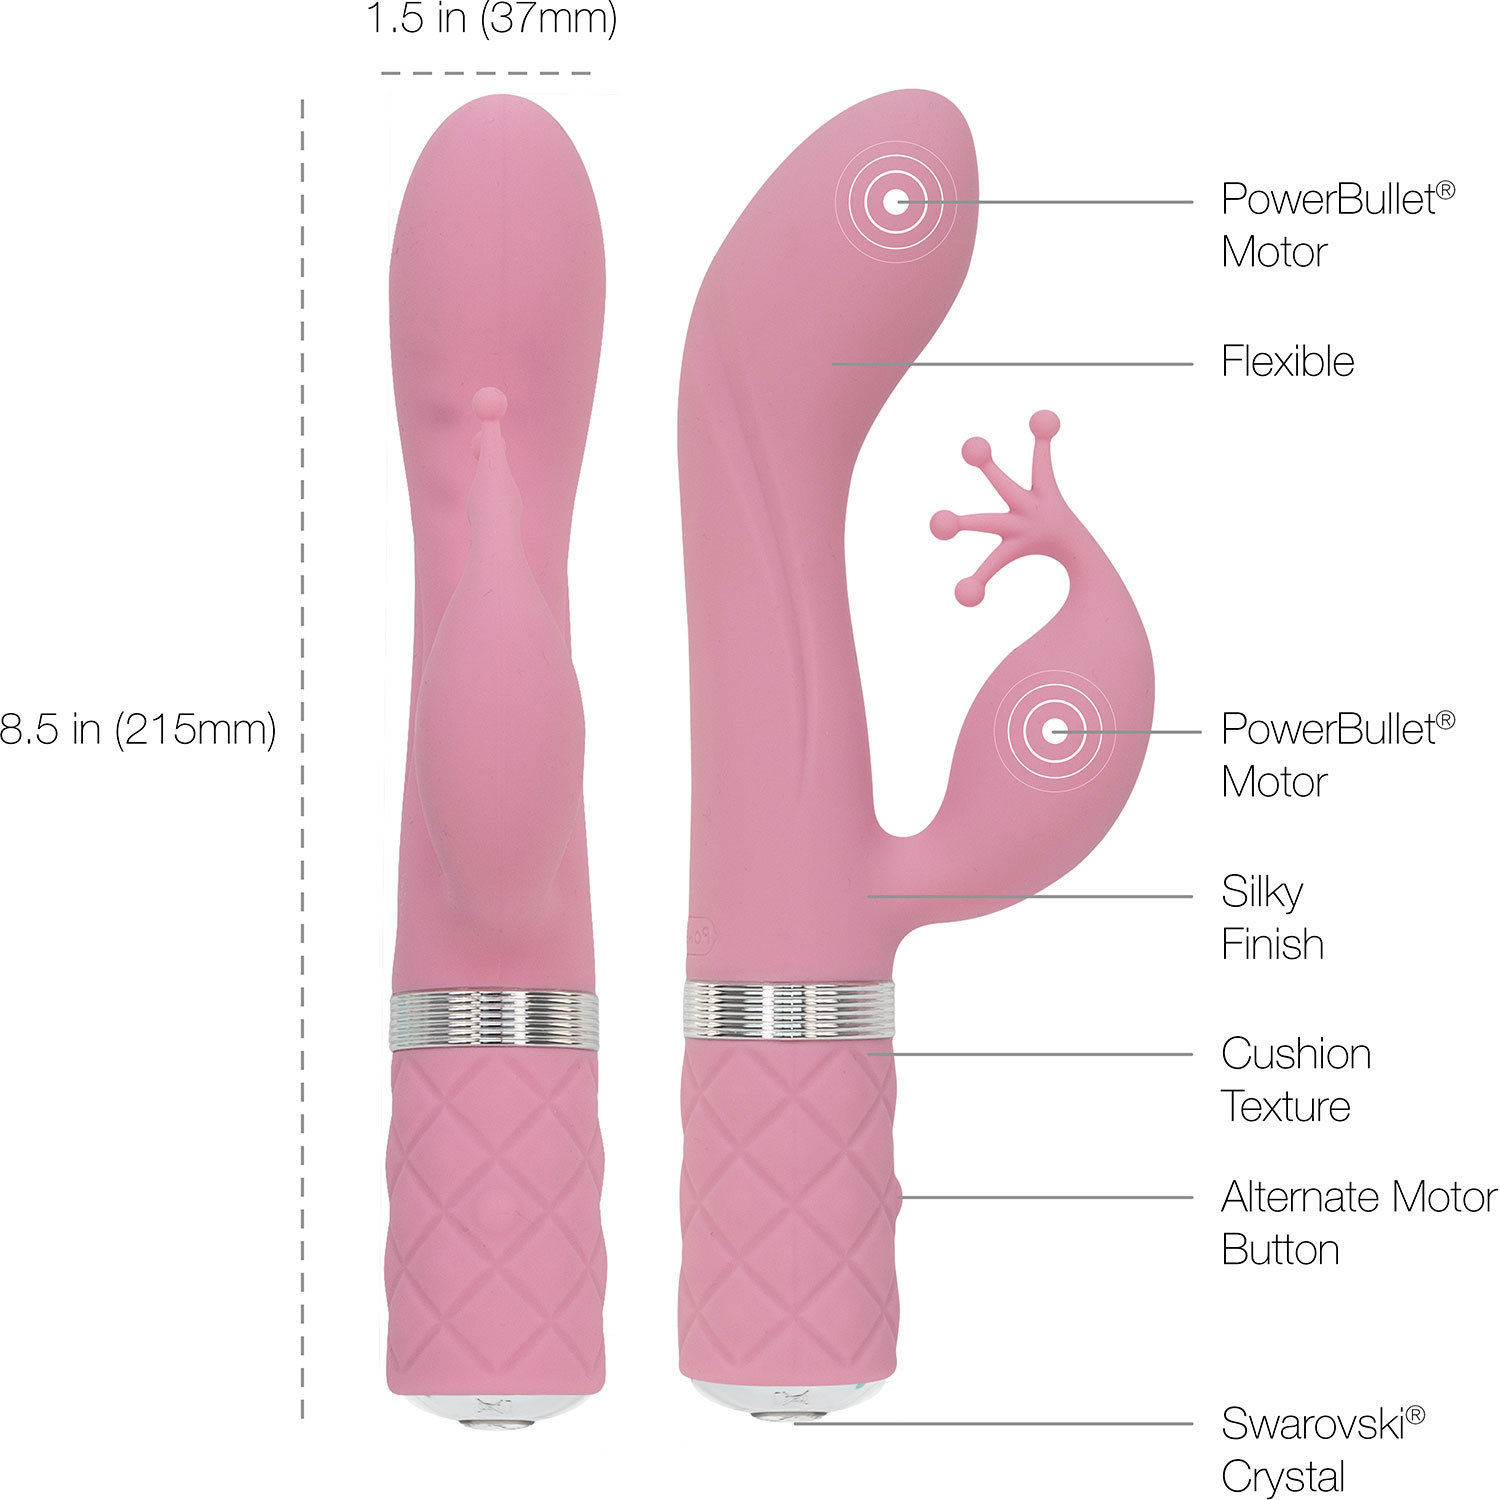 Pillow Talk Kinky Silicone Waterproof Rechargeable Dual Stimulation Vibrator - Measurements